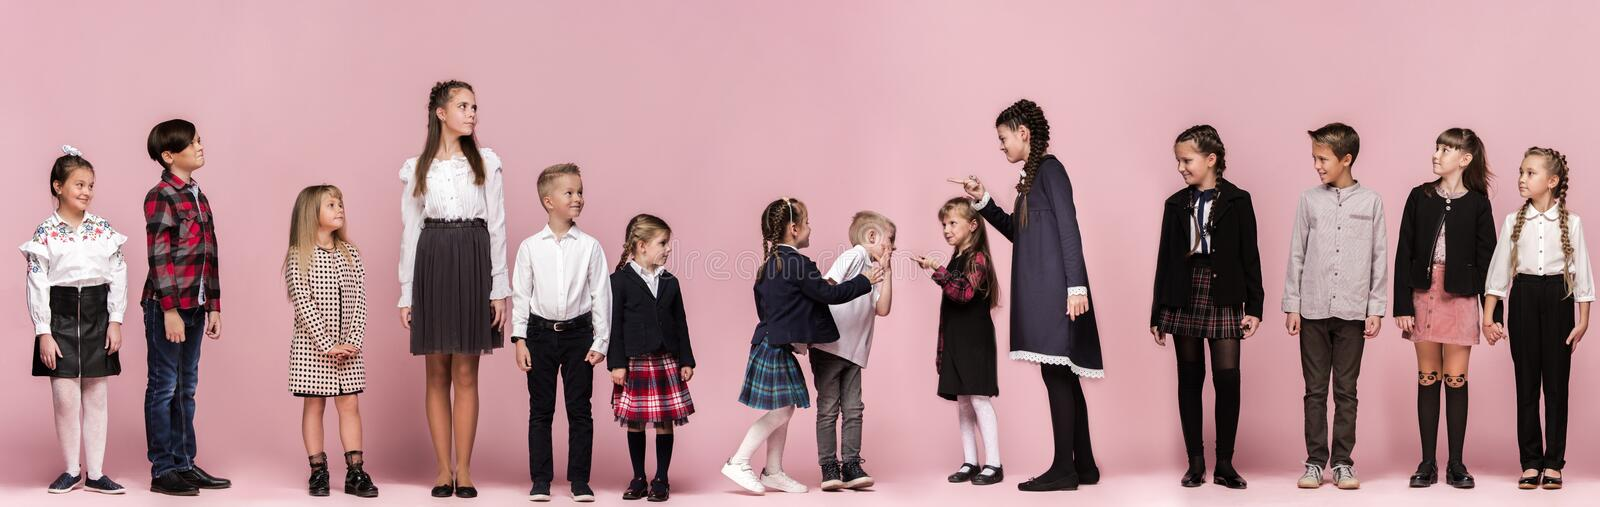 Cute stylish children on pink studio background. The beautiful teen girls and boy standing together stock images